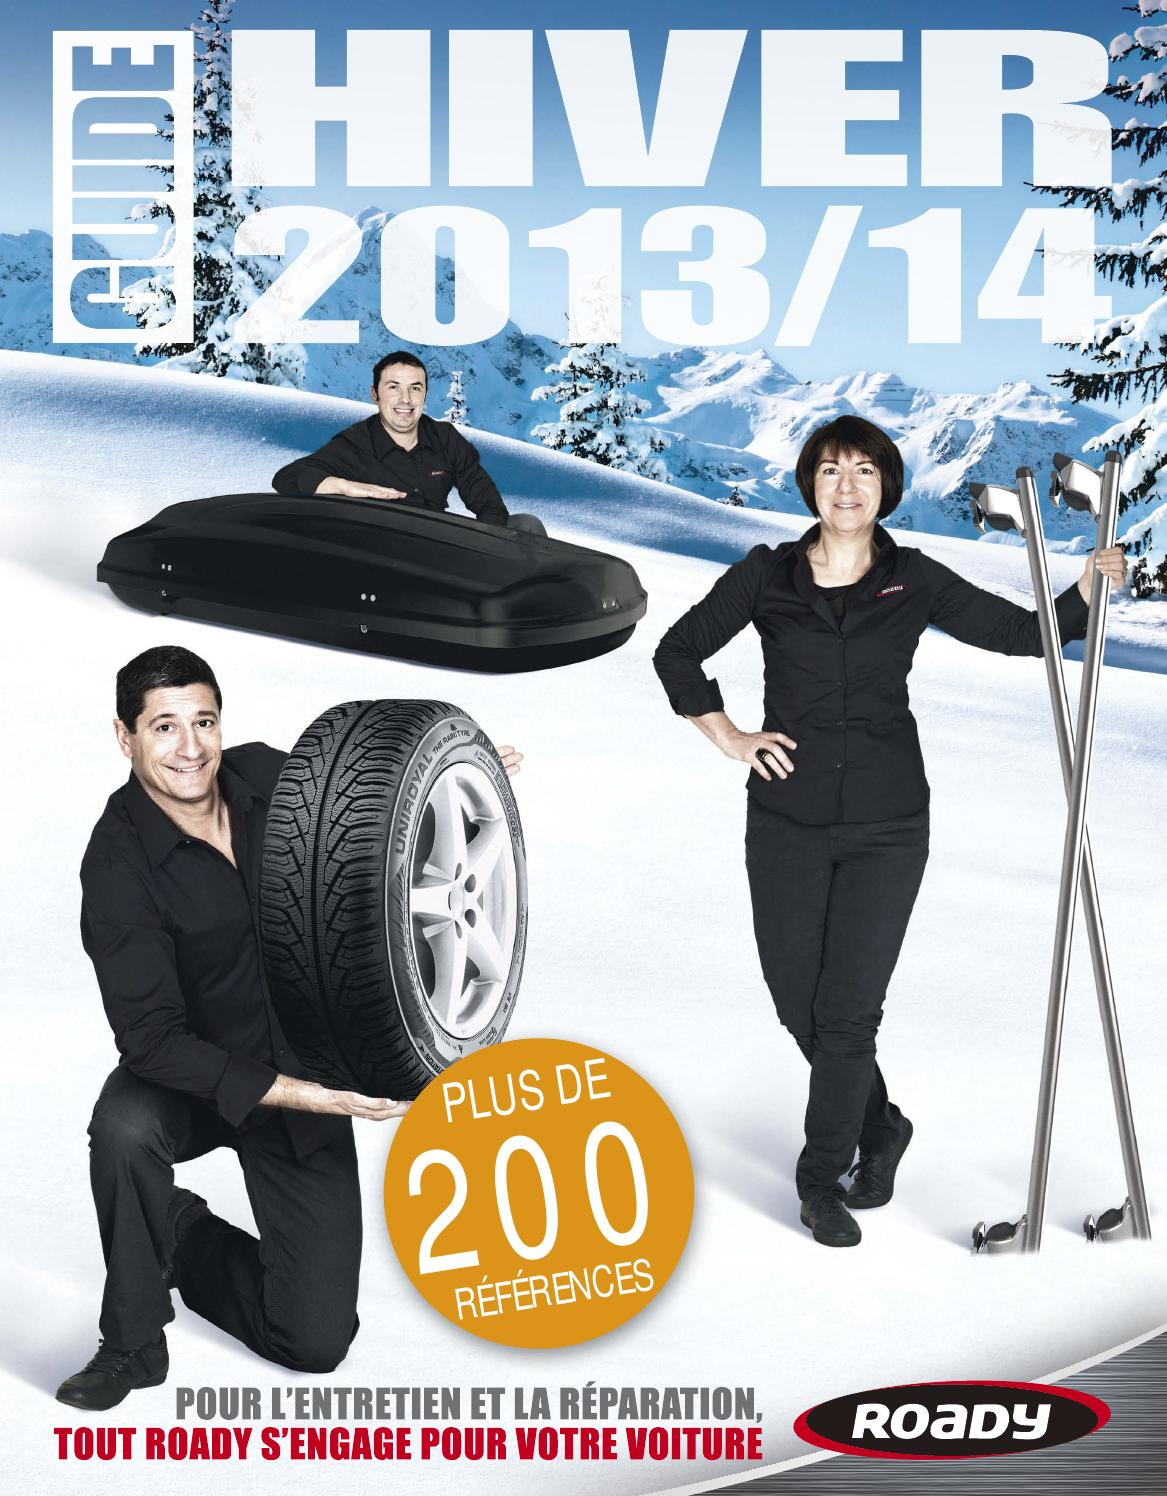 catalogue roady hiver 2013 2014 by joe monroe issuu. Black Bedroom Furniture Sets. Home Design Ideas